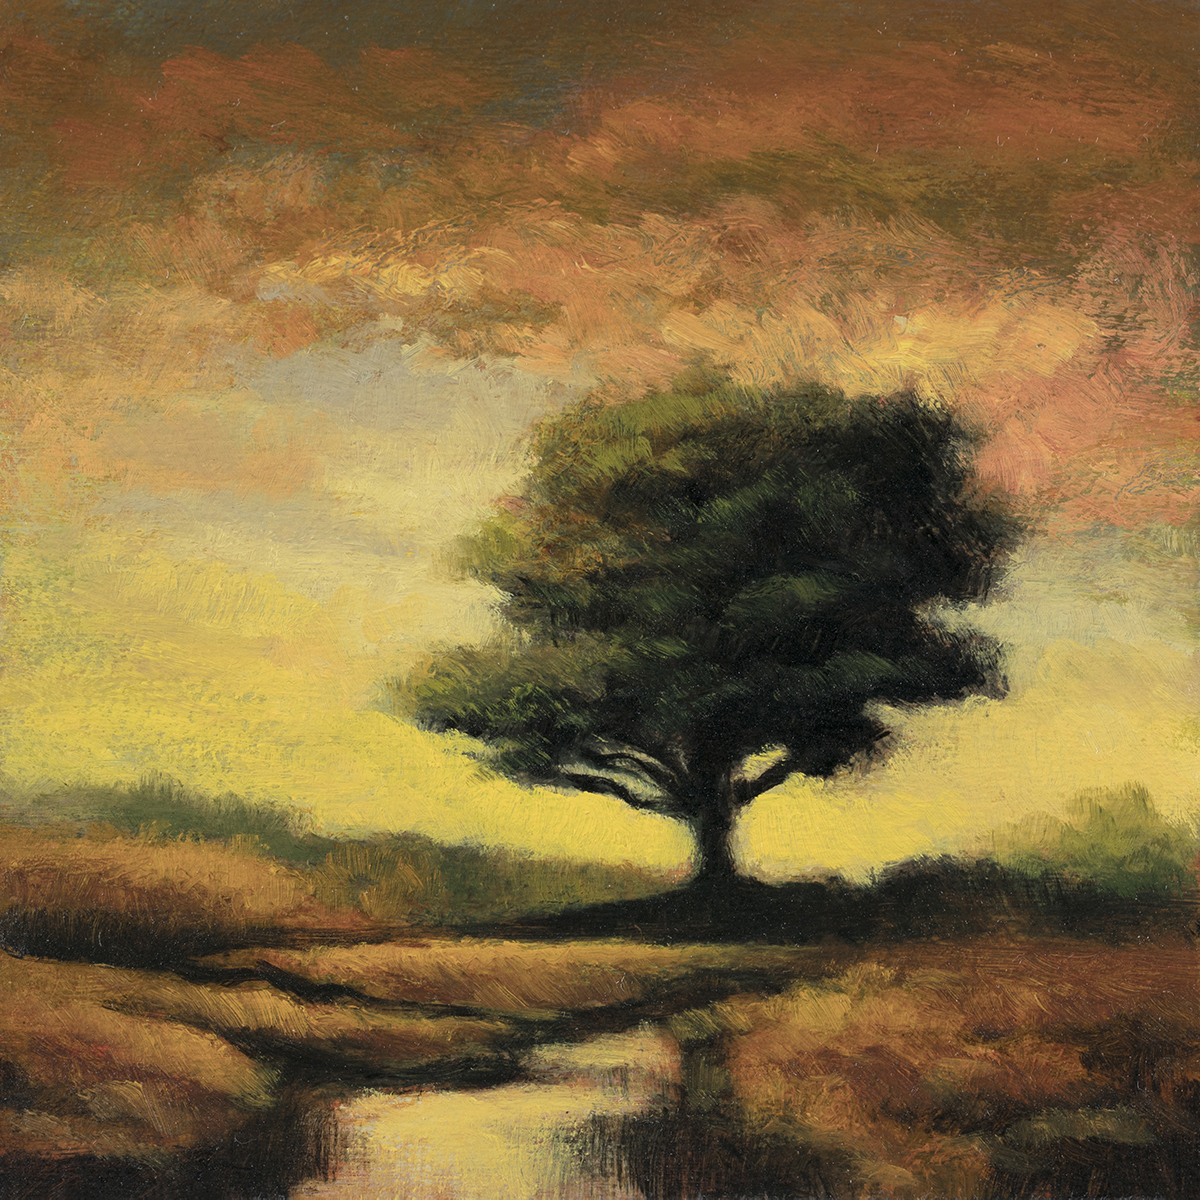 Morning Light by M Francis McCarthy - 5x7 Oil on Wood Panel